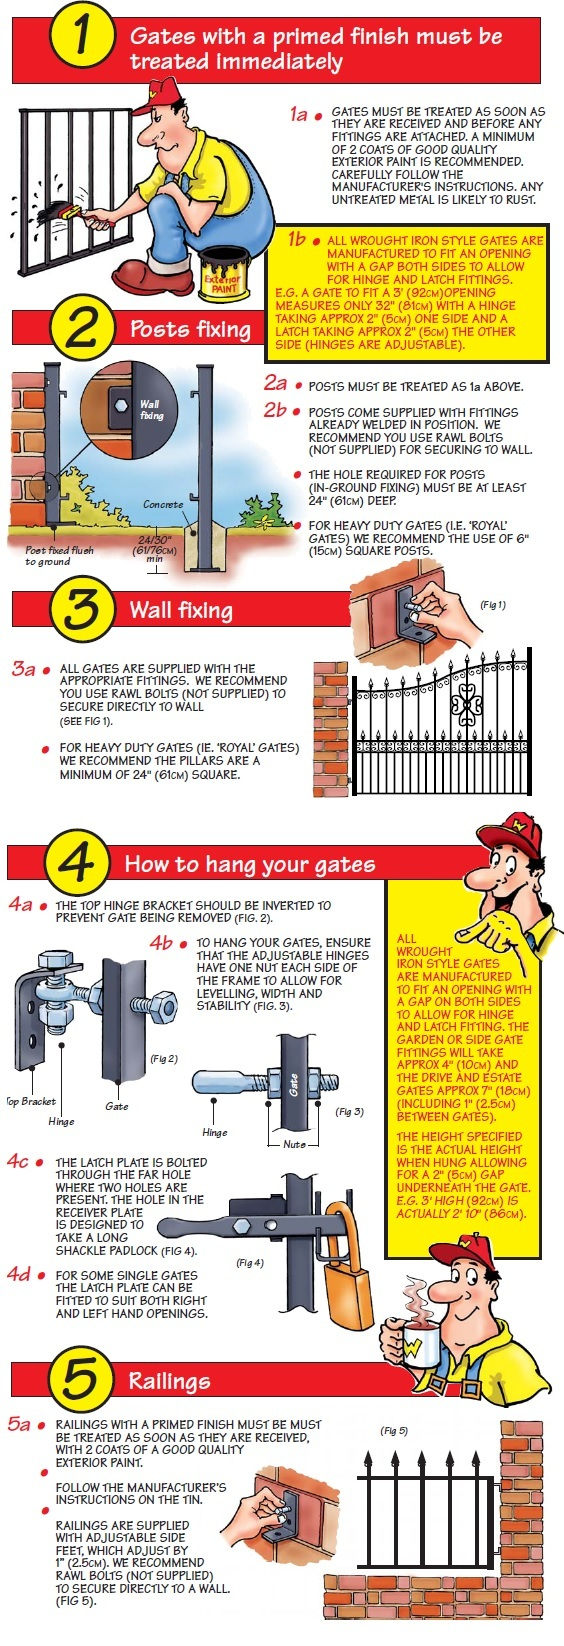 Metal Gates Direct installation guide for wrought iron style gates, fencing and railings